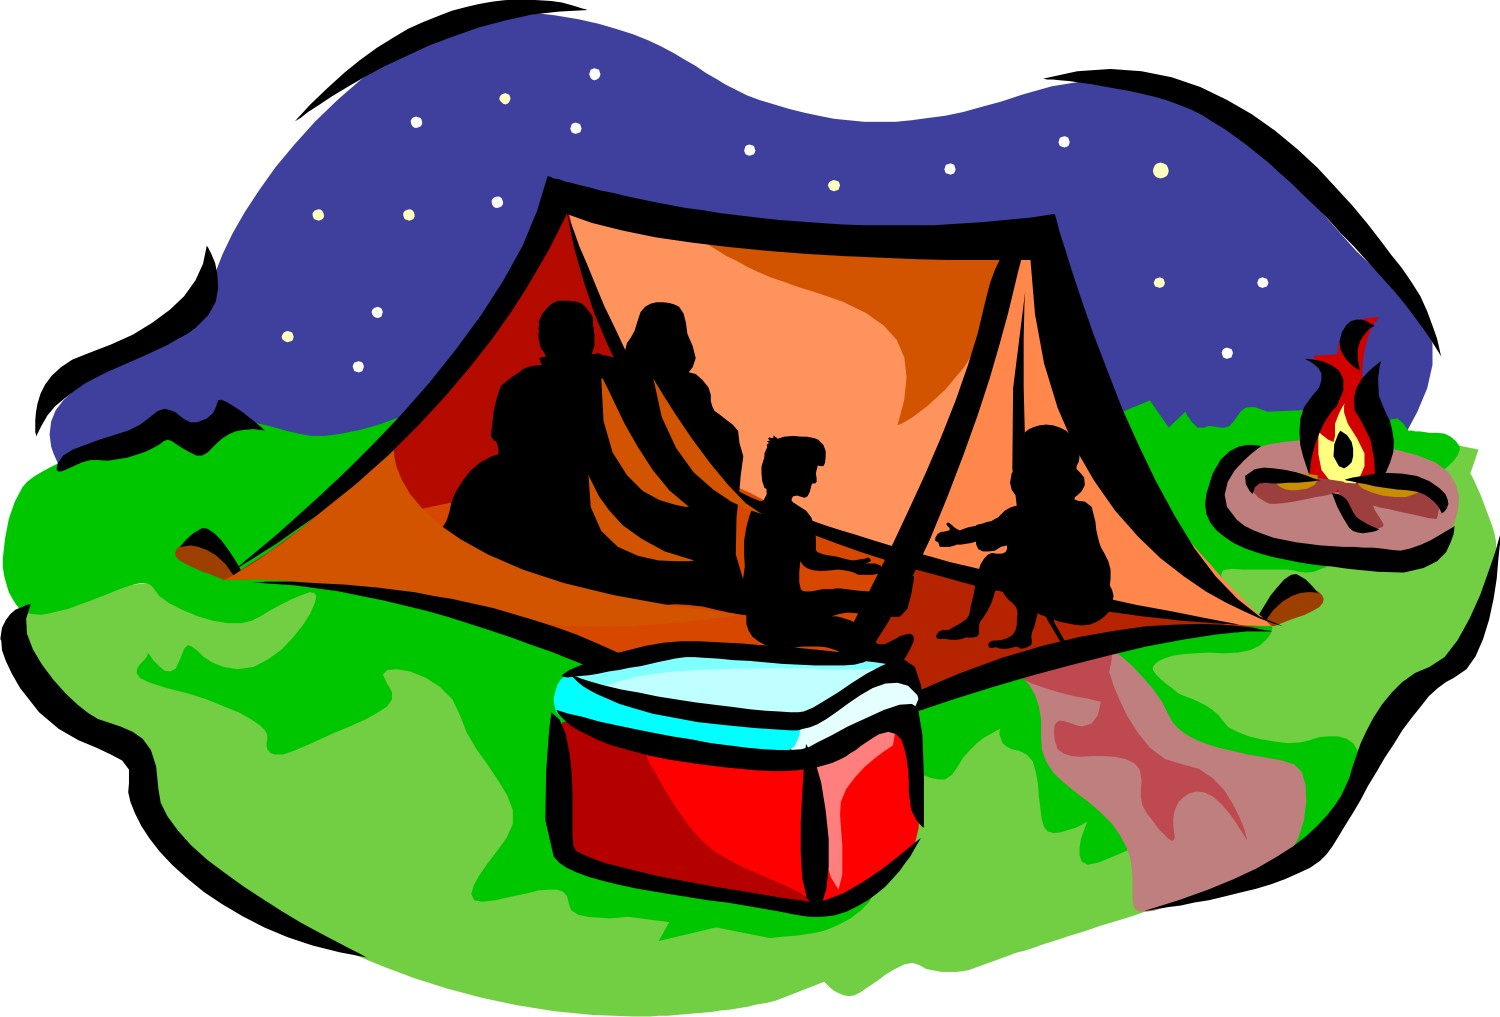 Kids Camp Clip Art